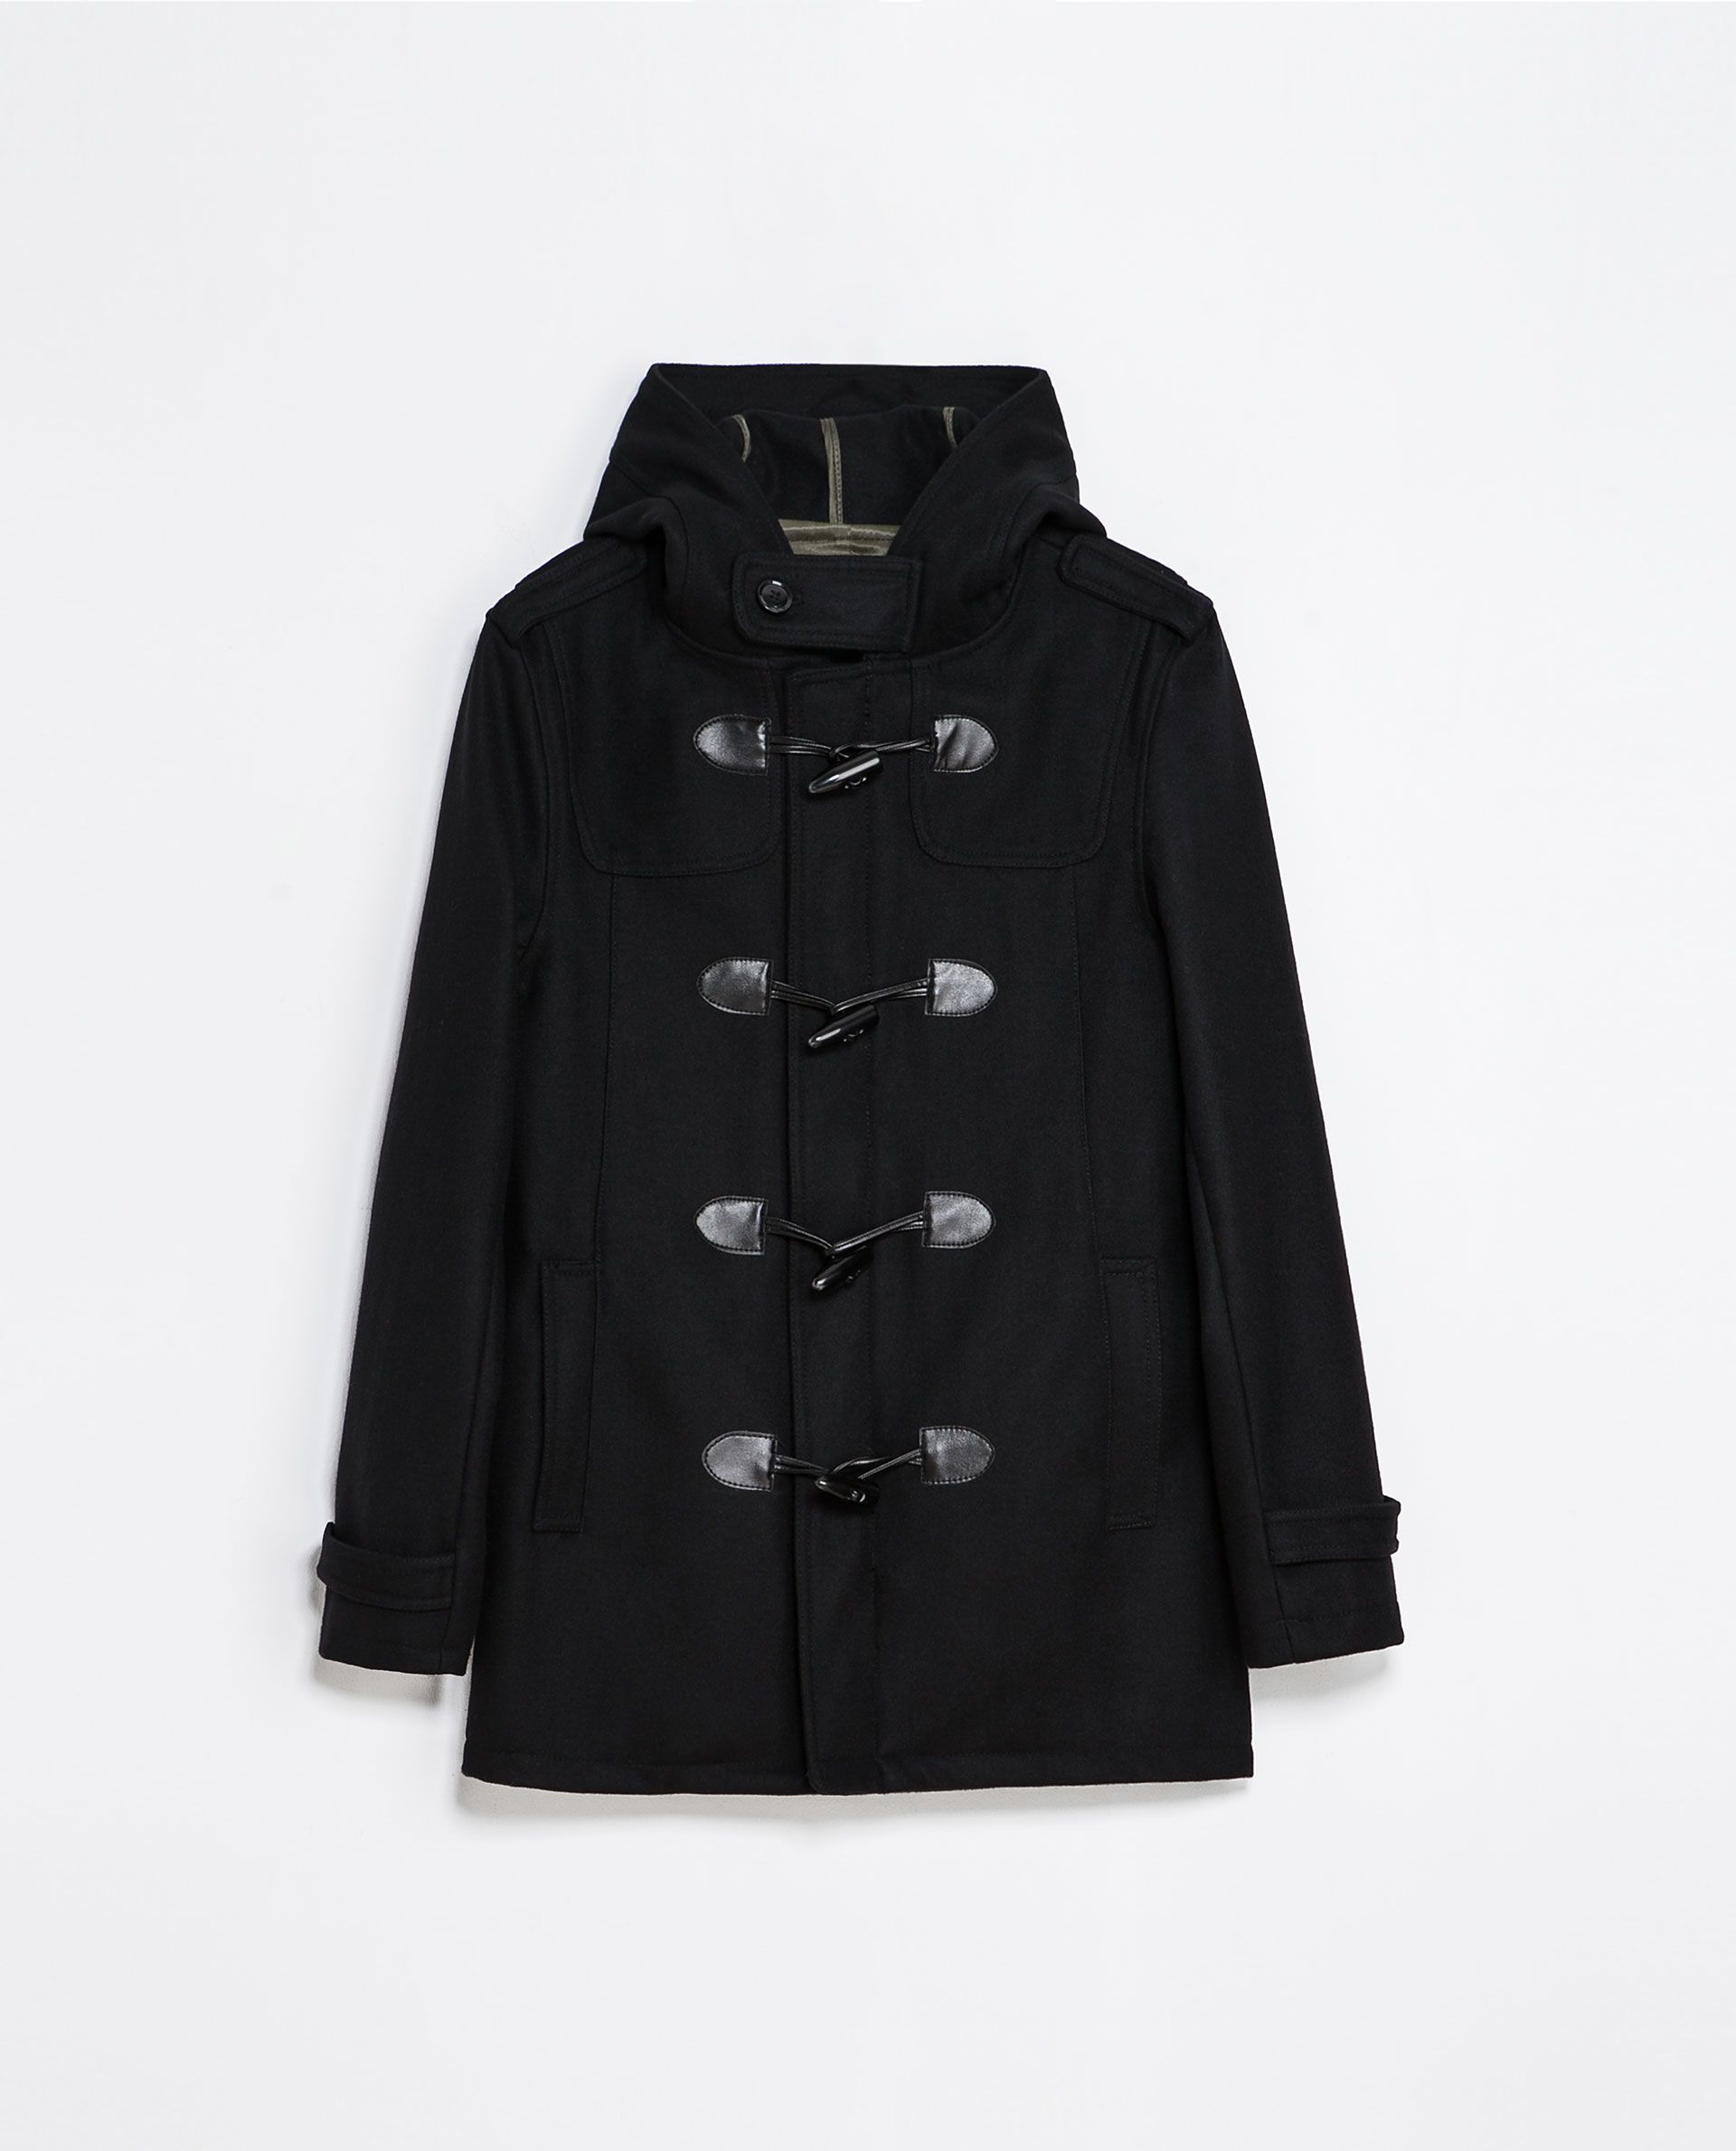 73afd6a2 Zara BASIC BLACK DUFFLE COAT Ref. 6593/362 179.00 CAD OUTER SHELL 60% WOOL,  34% POLYESTER, 2% ACRYLIC, 2% POLYAMIDE, 2% VISCOSE LINING 55% POLYESTER,  ...